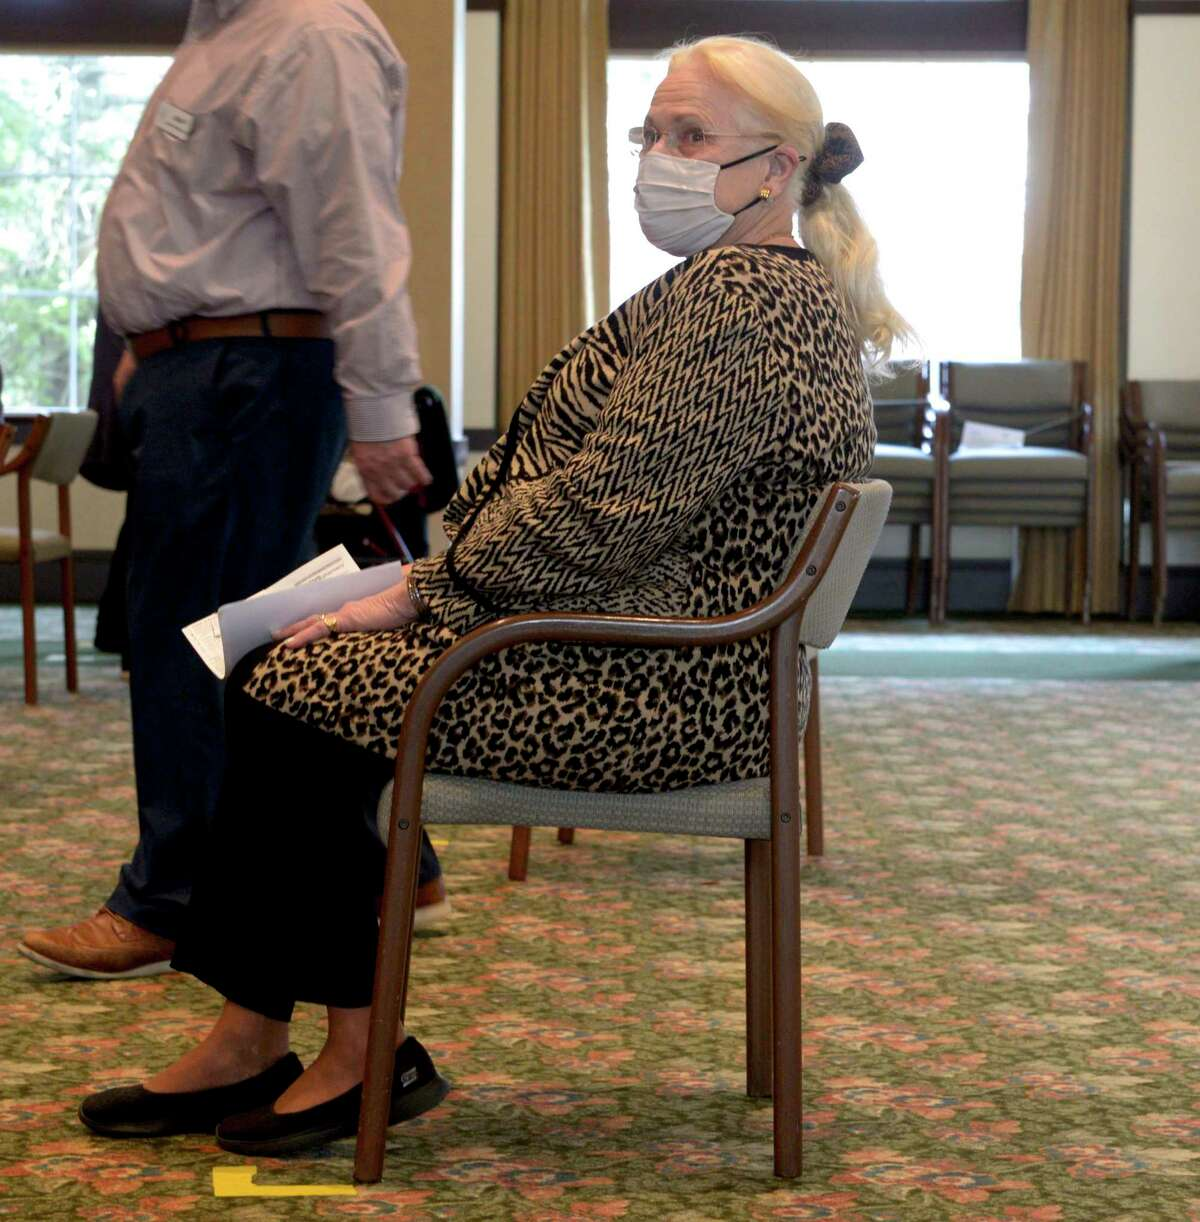 Gerd Hammarskjold a resident of Meadow Ridge senior living, waits to receive her covid-19 vaccination on Friday. January 22, 2021, in Redding, Conn.